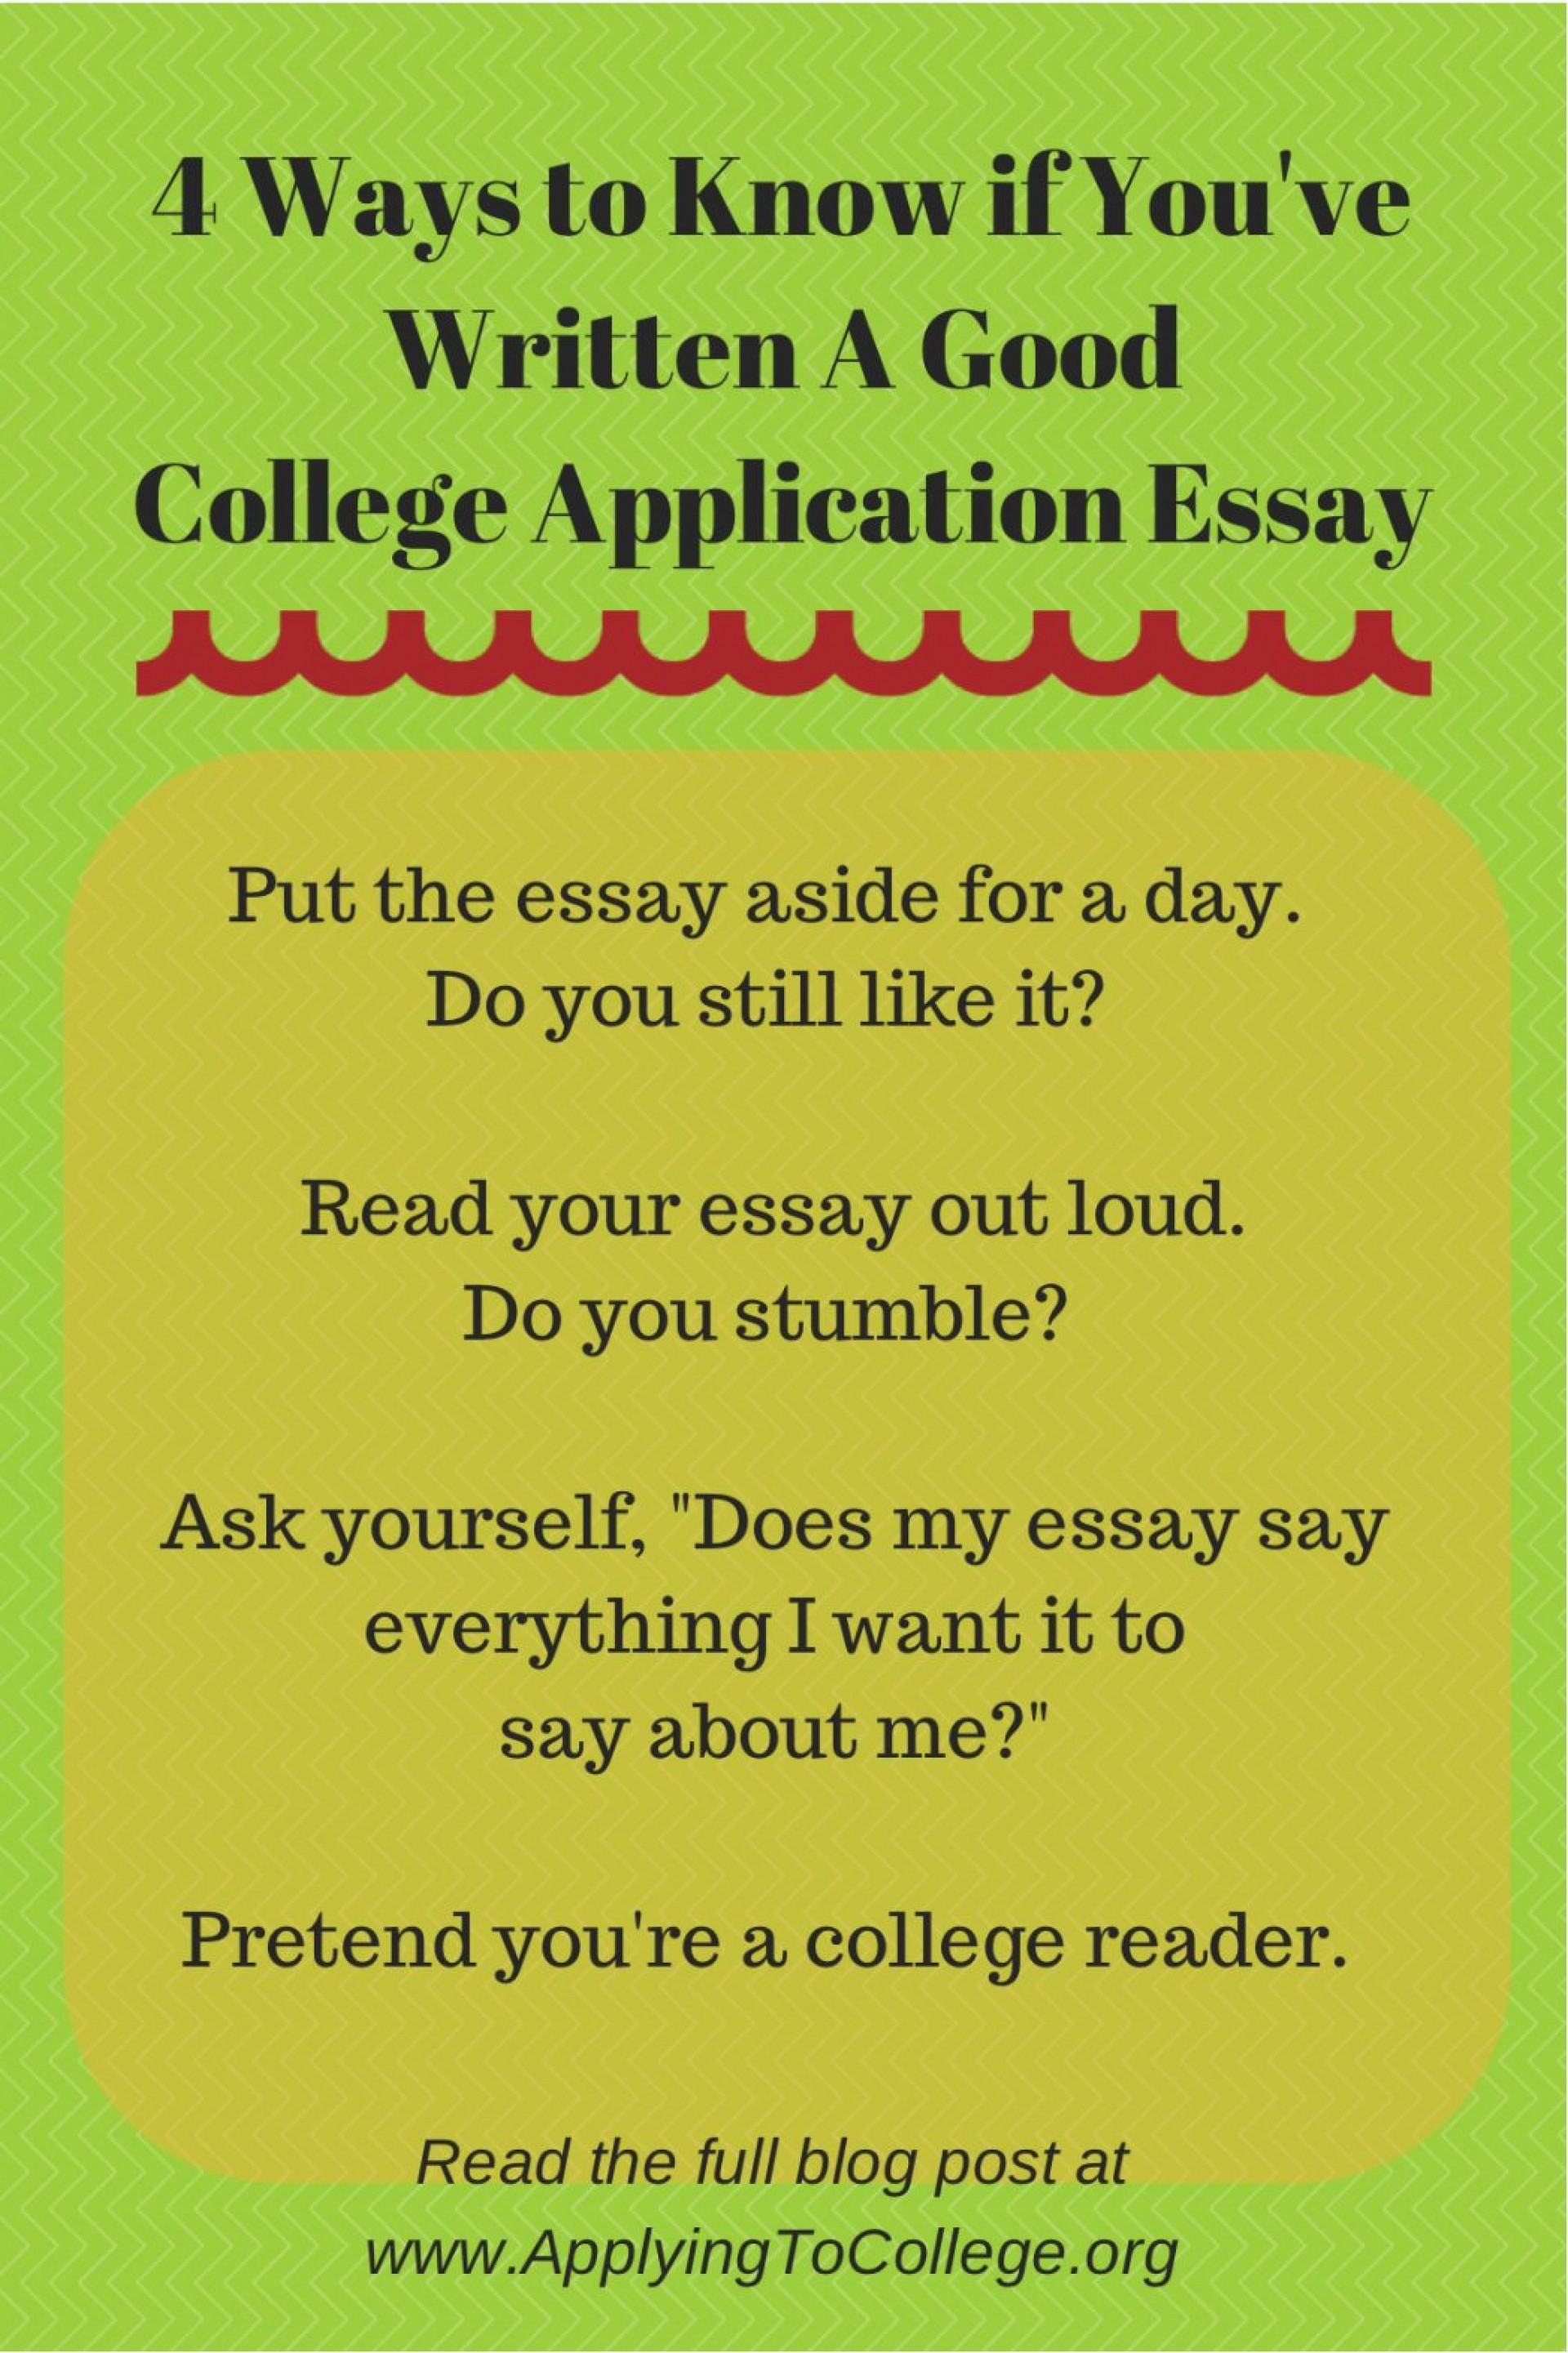 024 Write My Essay For Me Free Example Research Paper Comparative Literature 4ways To Know If Youve Written Online Uk Reviews Cheap Formidable College 1920